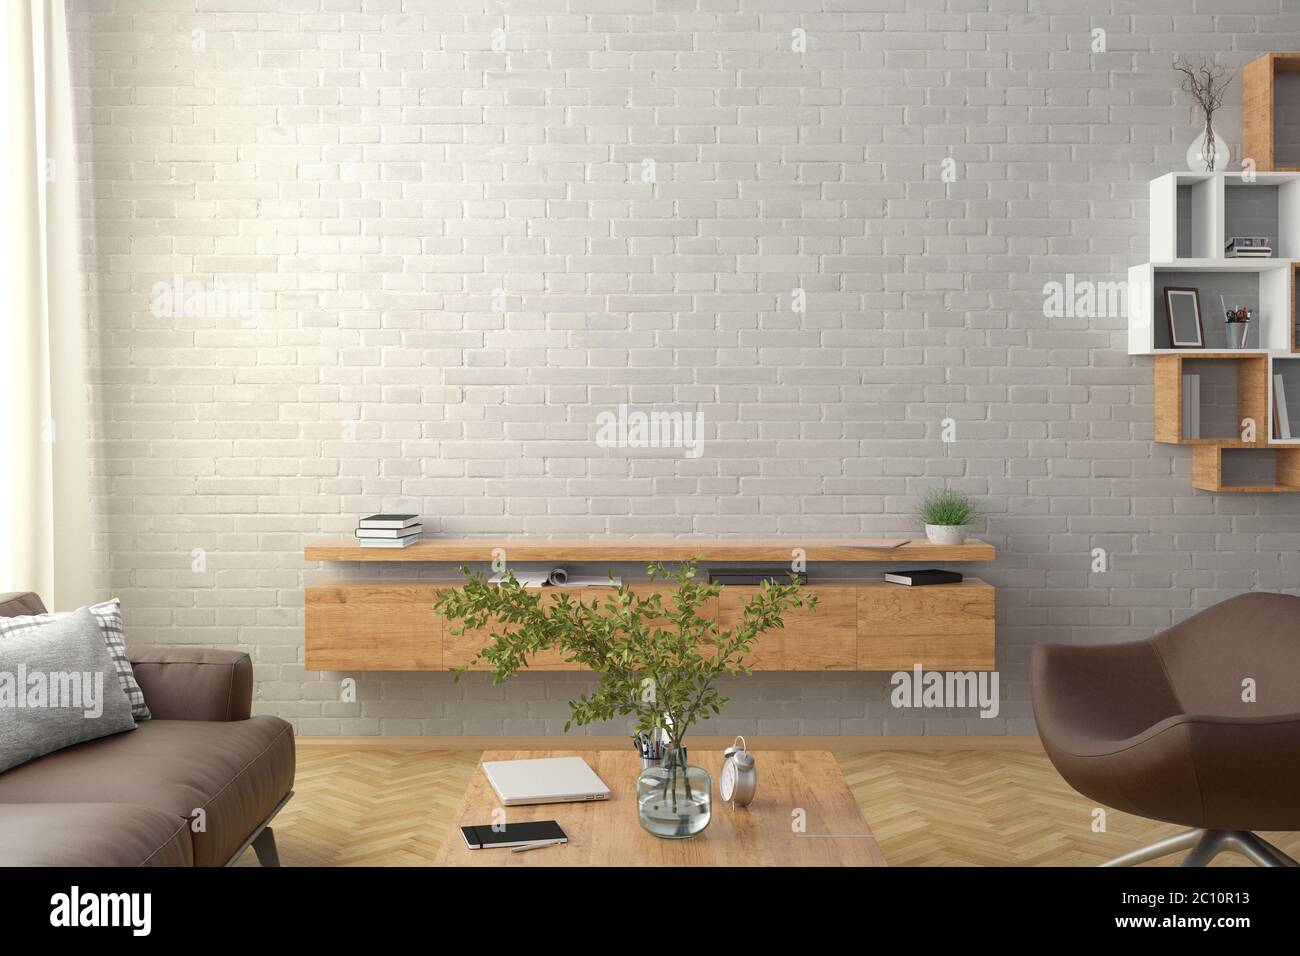 Blank White Brick Wall Mock Up In The Living Room 3d Rendering Stock Photo Alamy